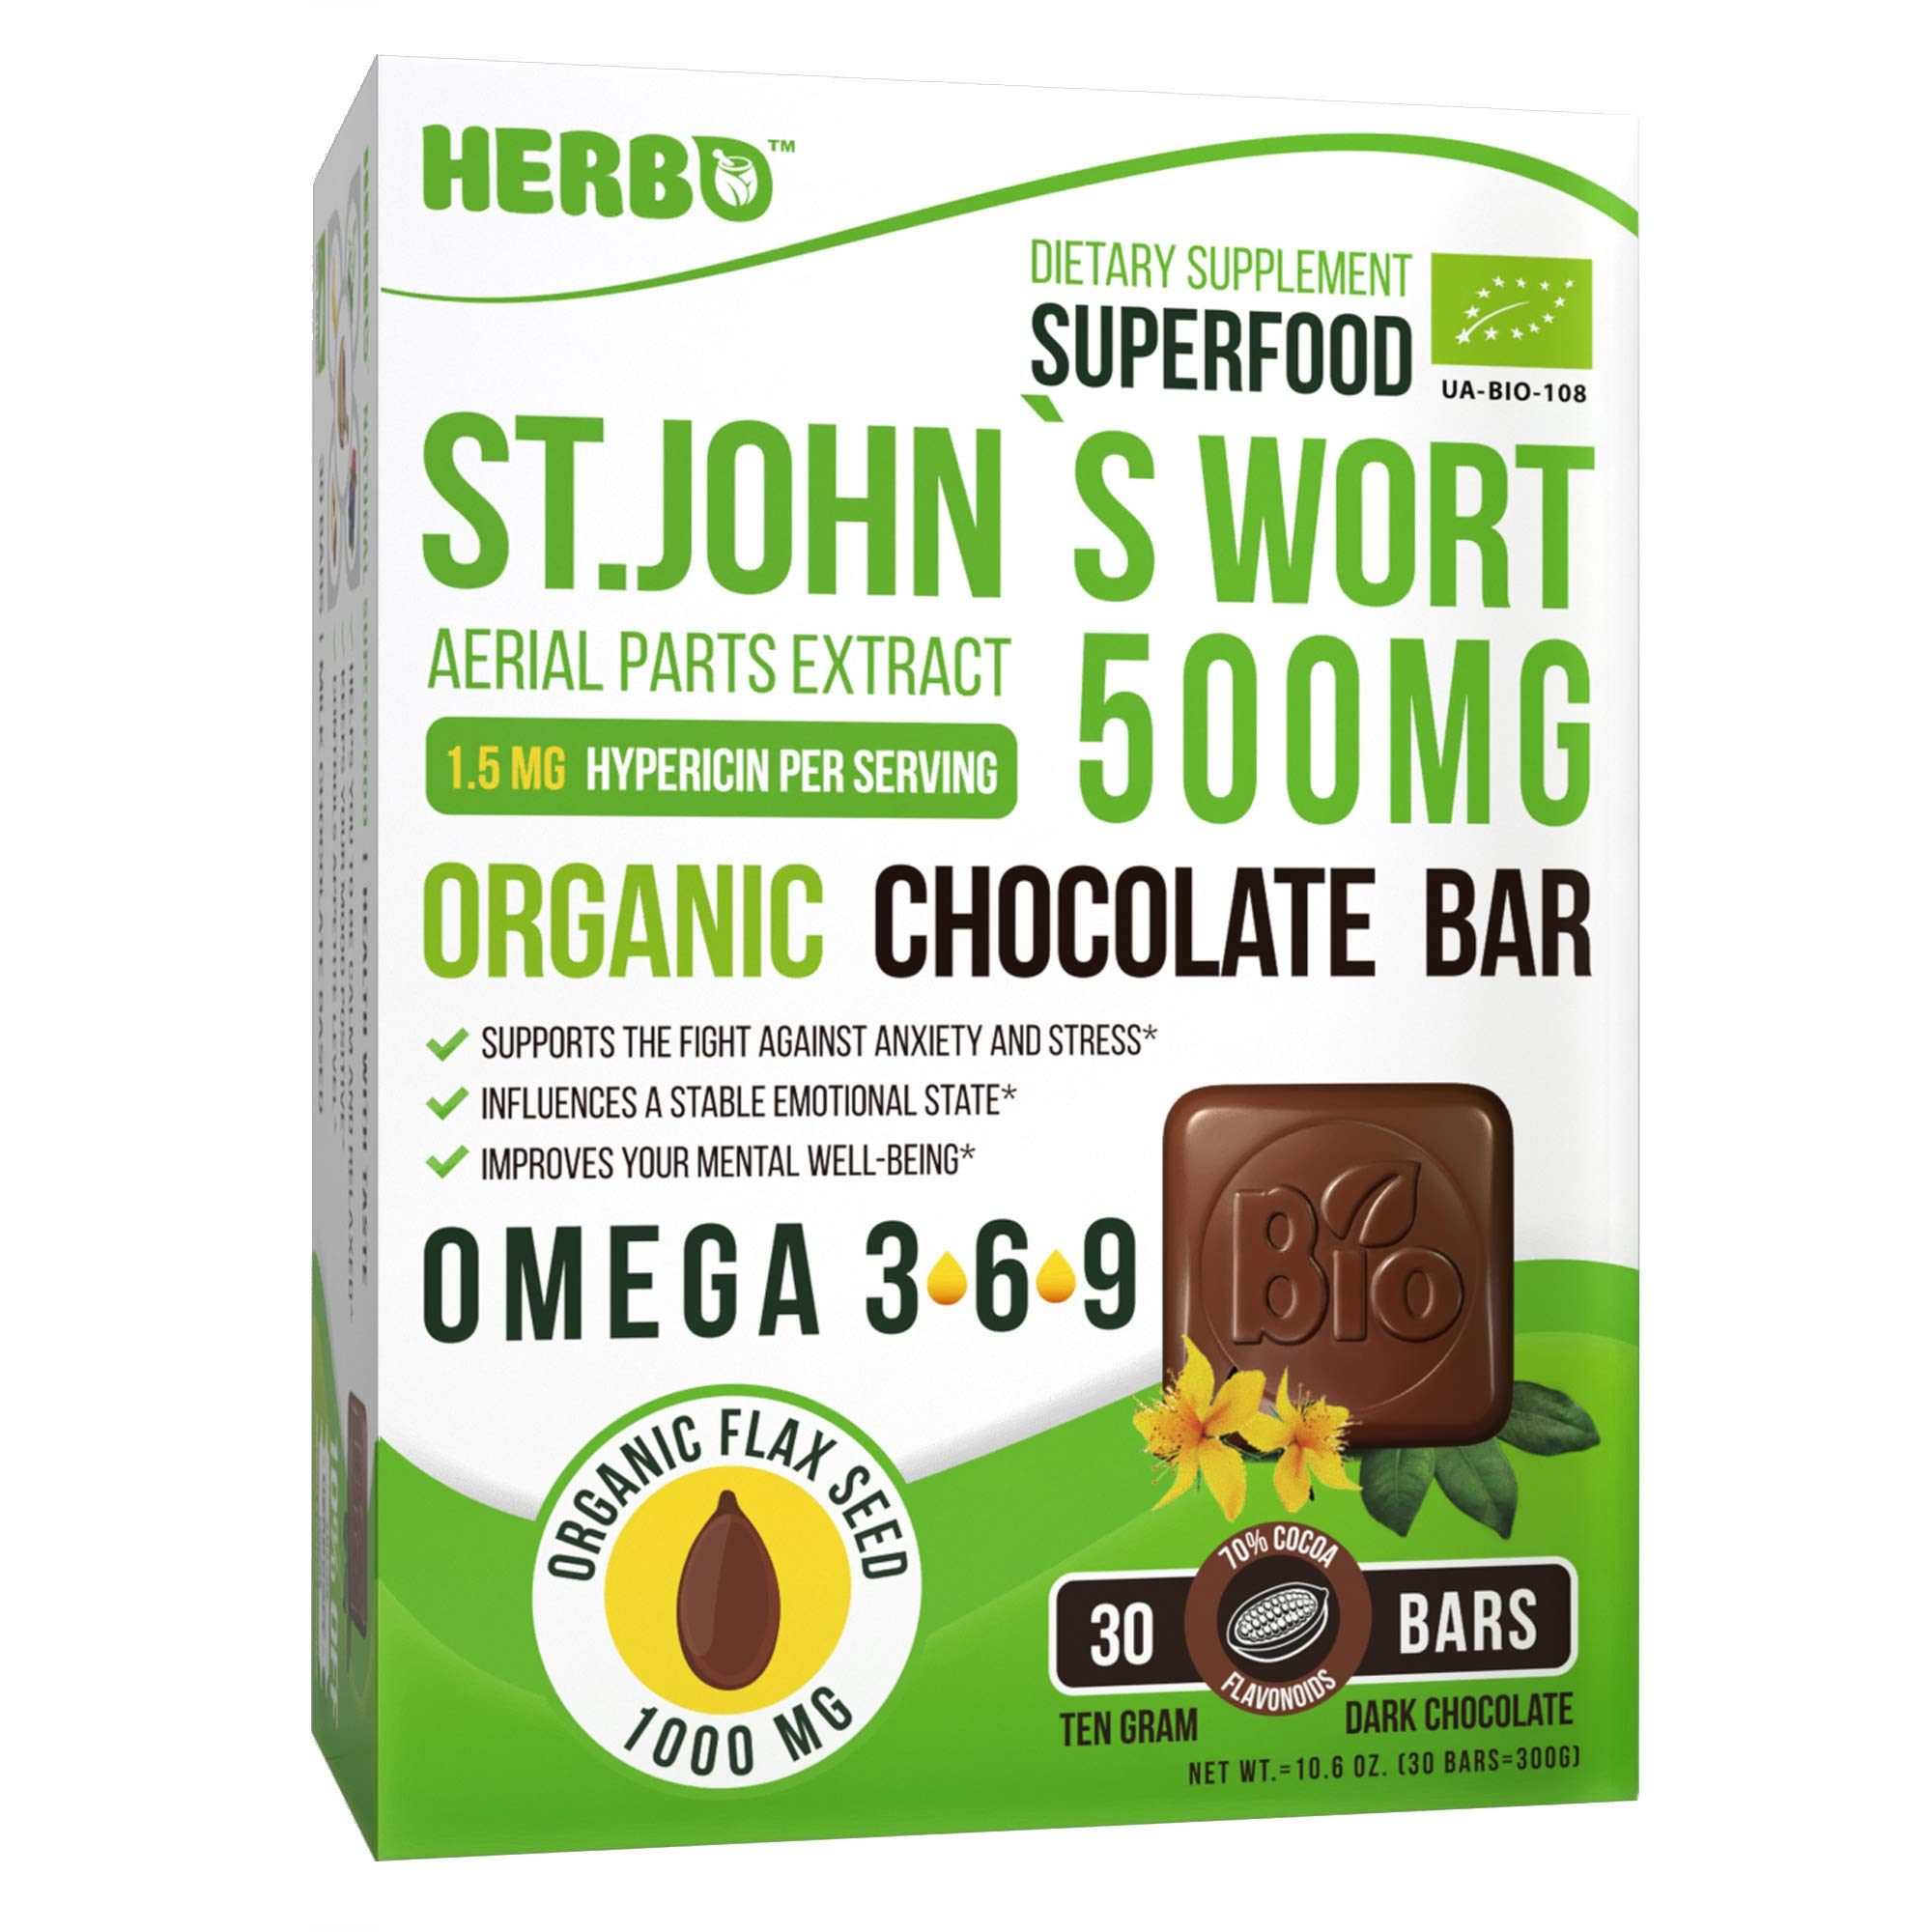 Herbo Superfood St. John's Wort Extract 500 mg 0.3% Hypericins in Organic Dark Chocolate - for Anxiety, Depression and Stress Relief - 30 Omega-3 Enriched Bars - Non-GMO, Gluten Free